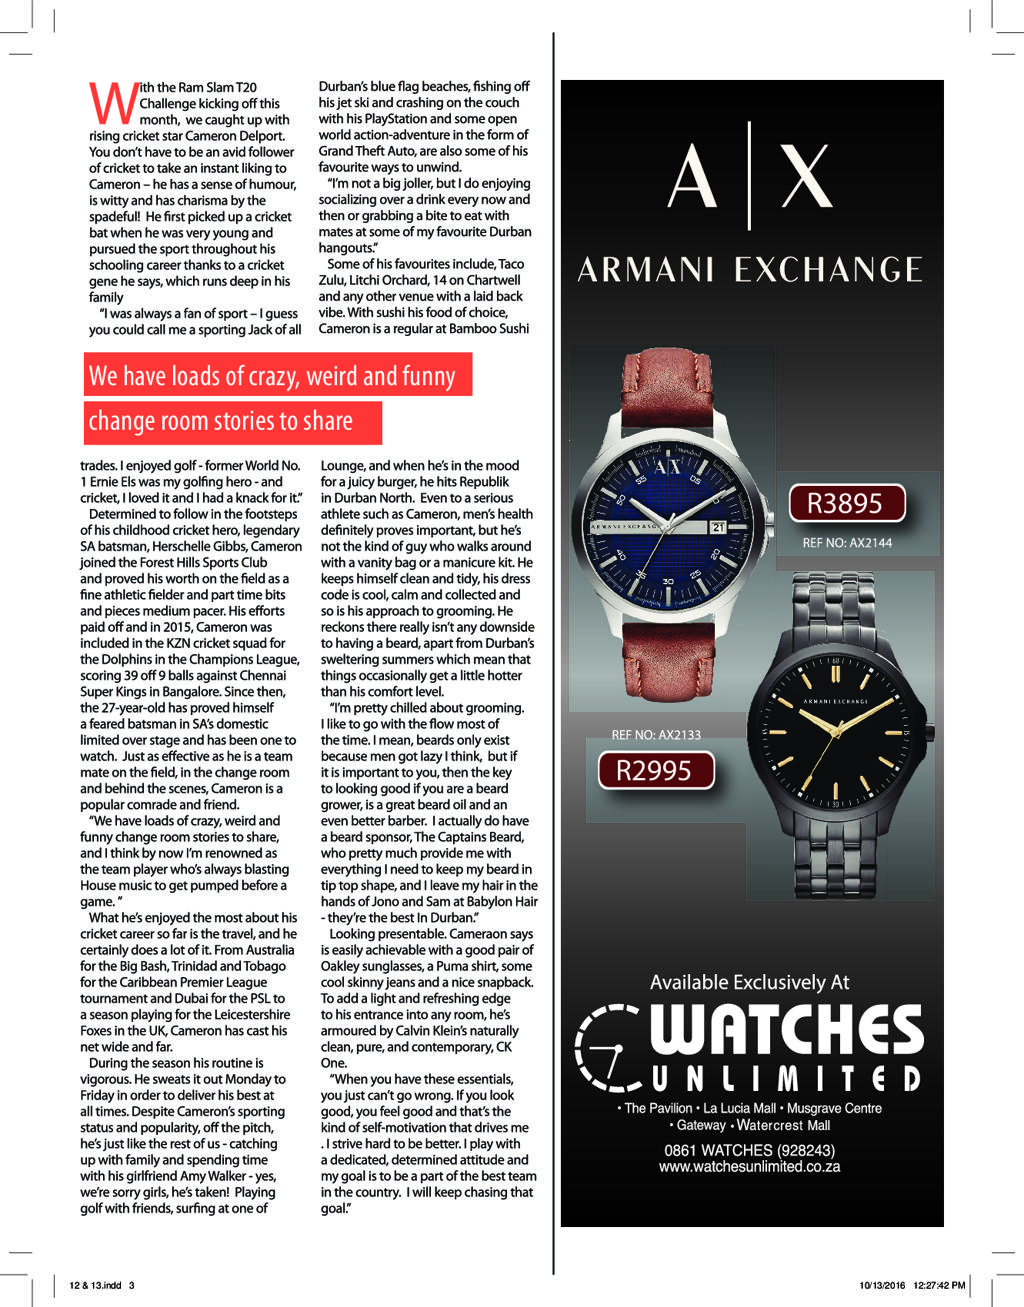 durban-get-it-magazine-november-2016-epapers-page-15